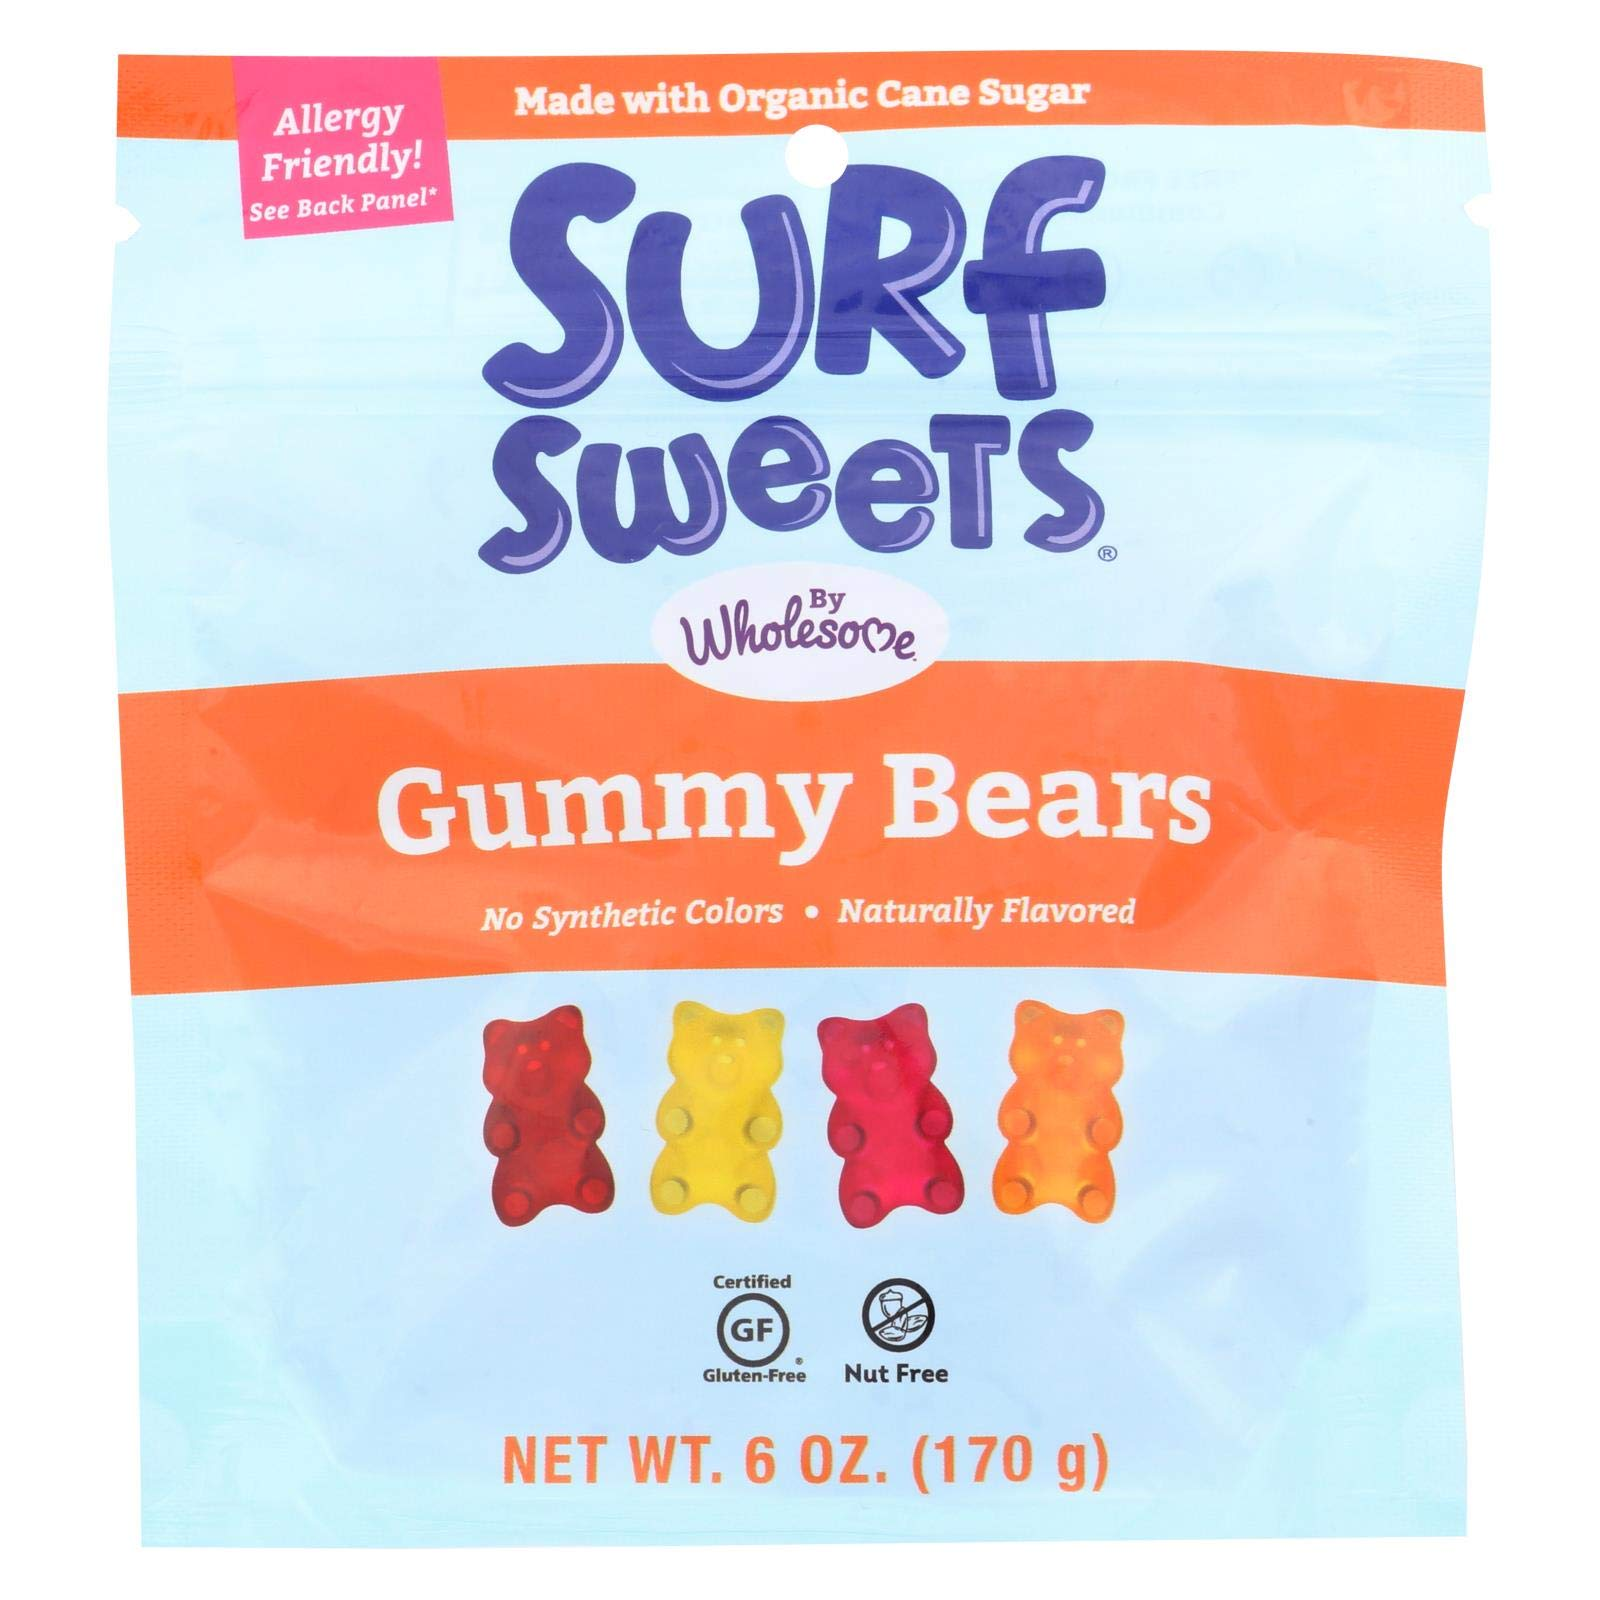 SURF SWEETS, GUMMY BEARS, OG3 - Pack of 6 by Surf Sweets